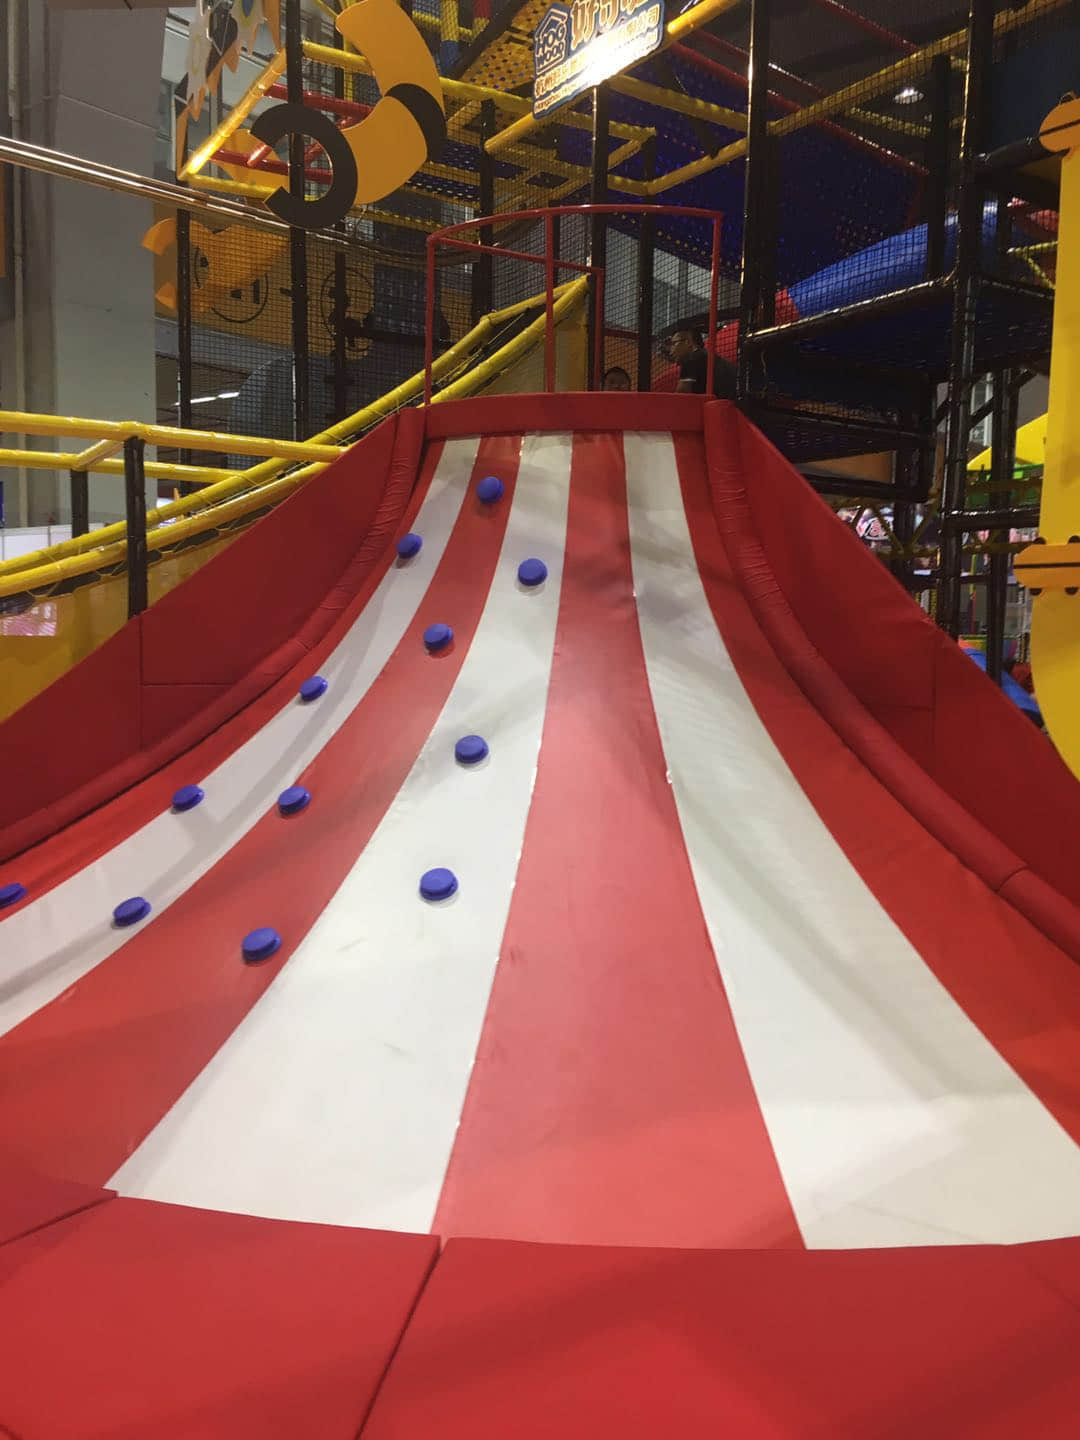 the latest indoor playground equipment